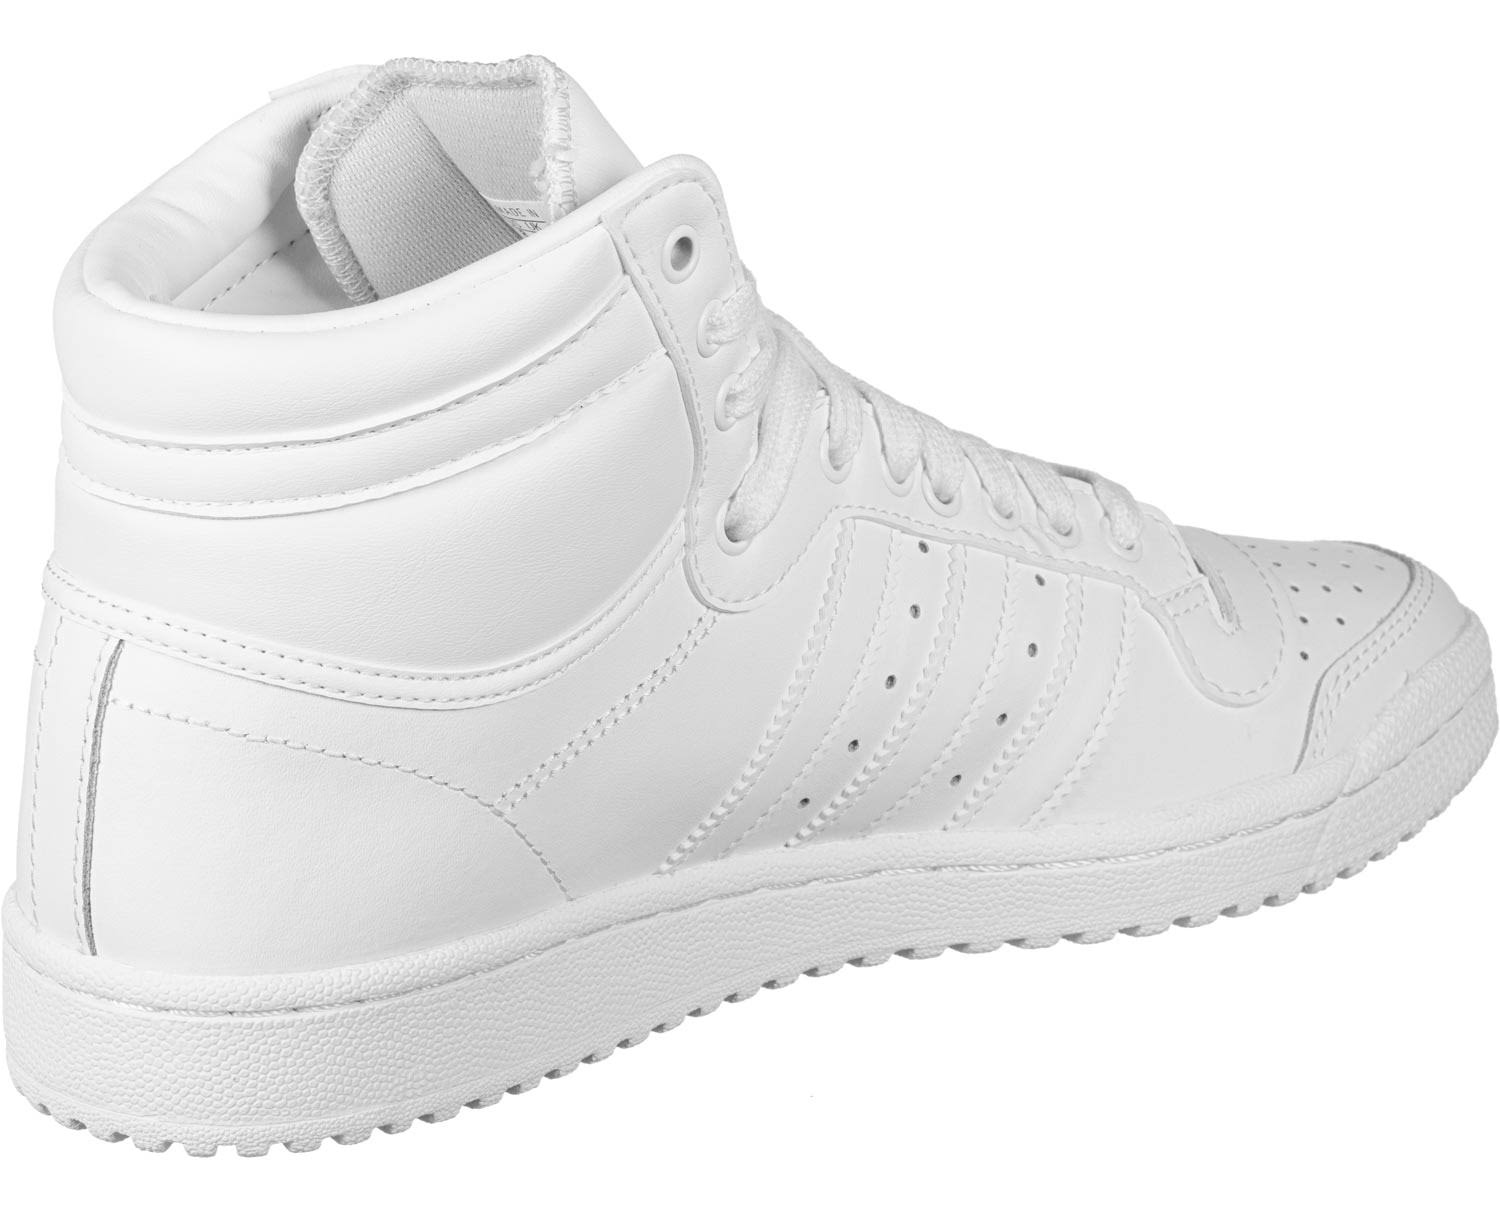 Adidas Originals Top Ten Hi Trainers - White